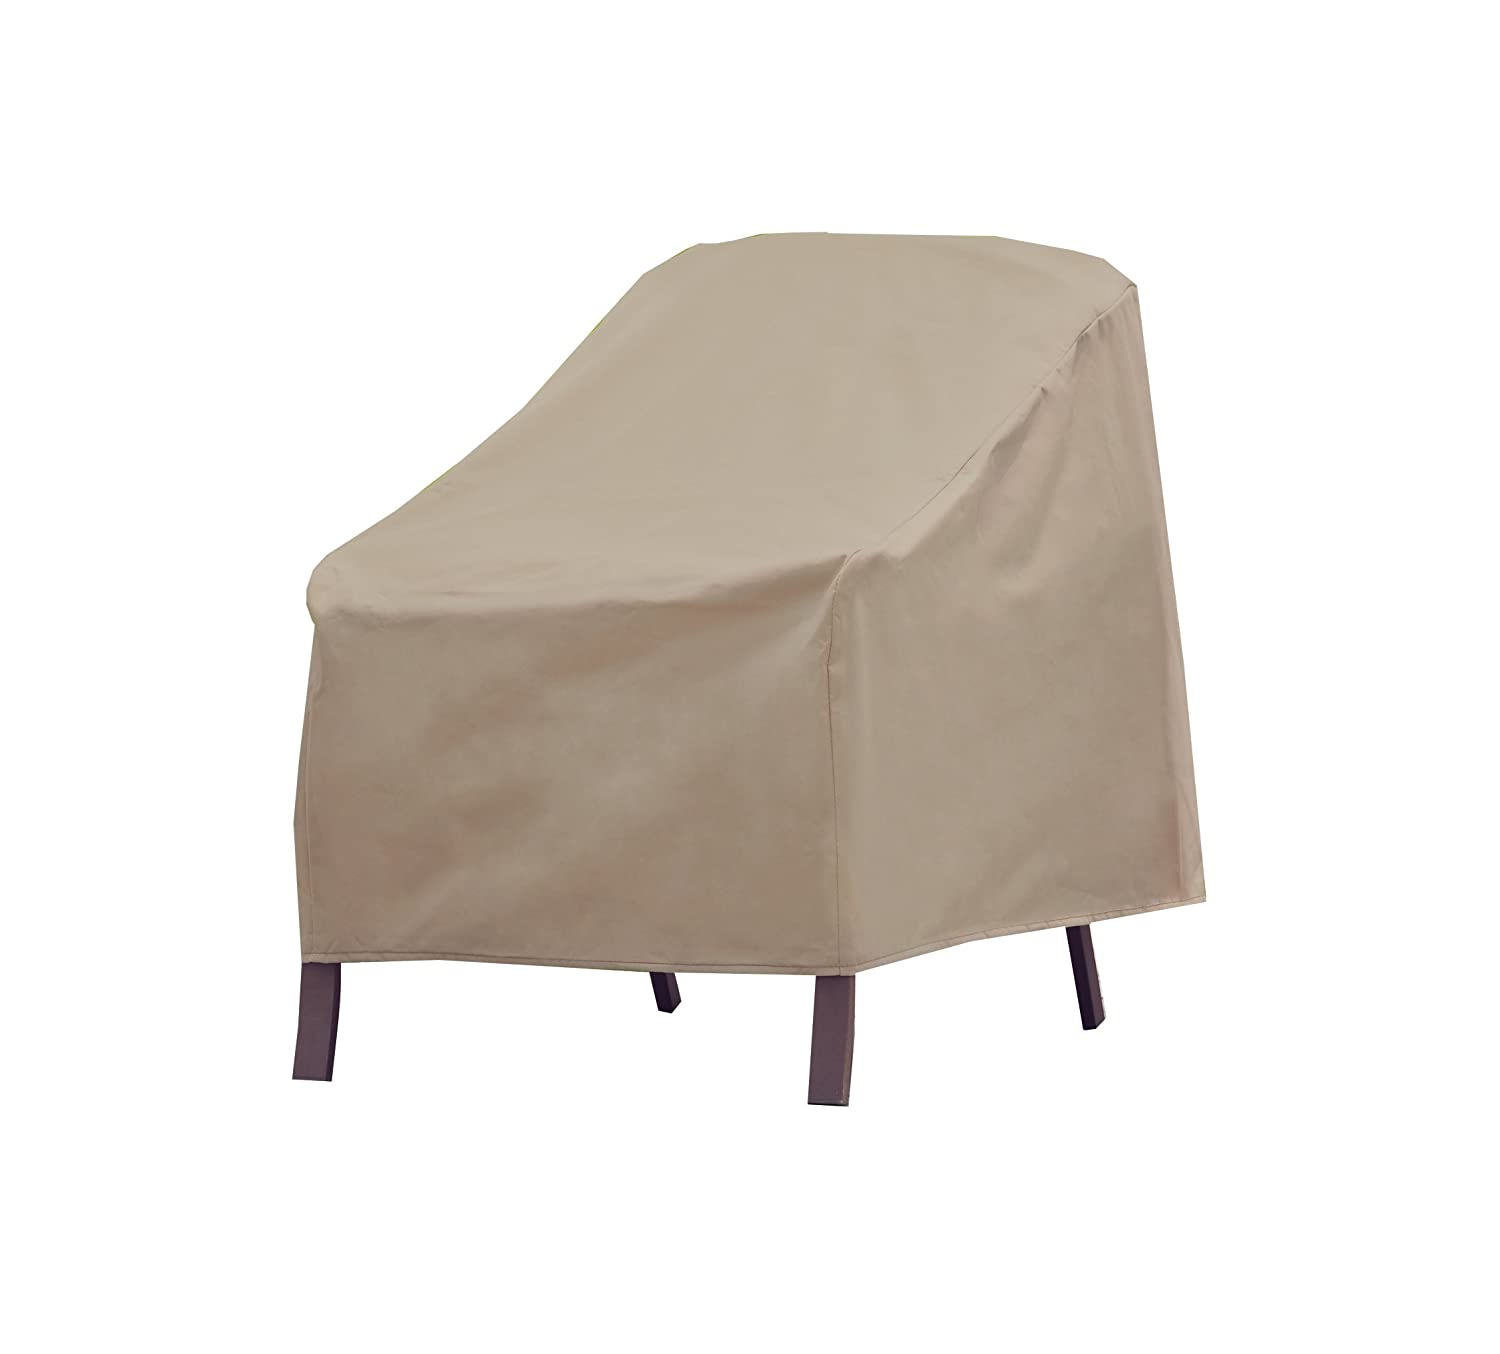 Modern Leisure Patio Furniture Chair Cover, Weather & waterproof patio chair cover